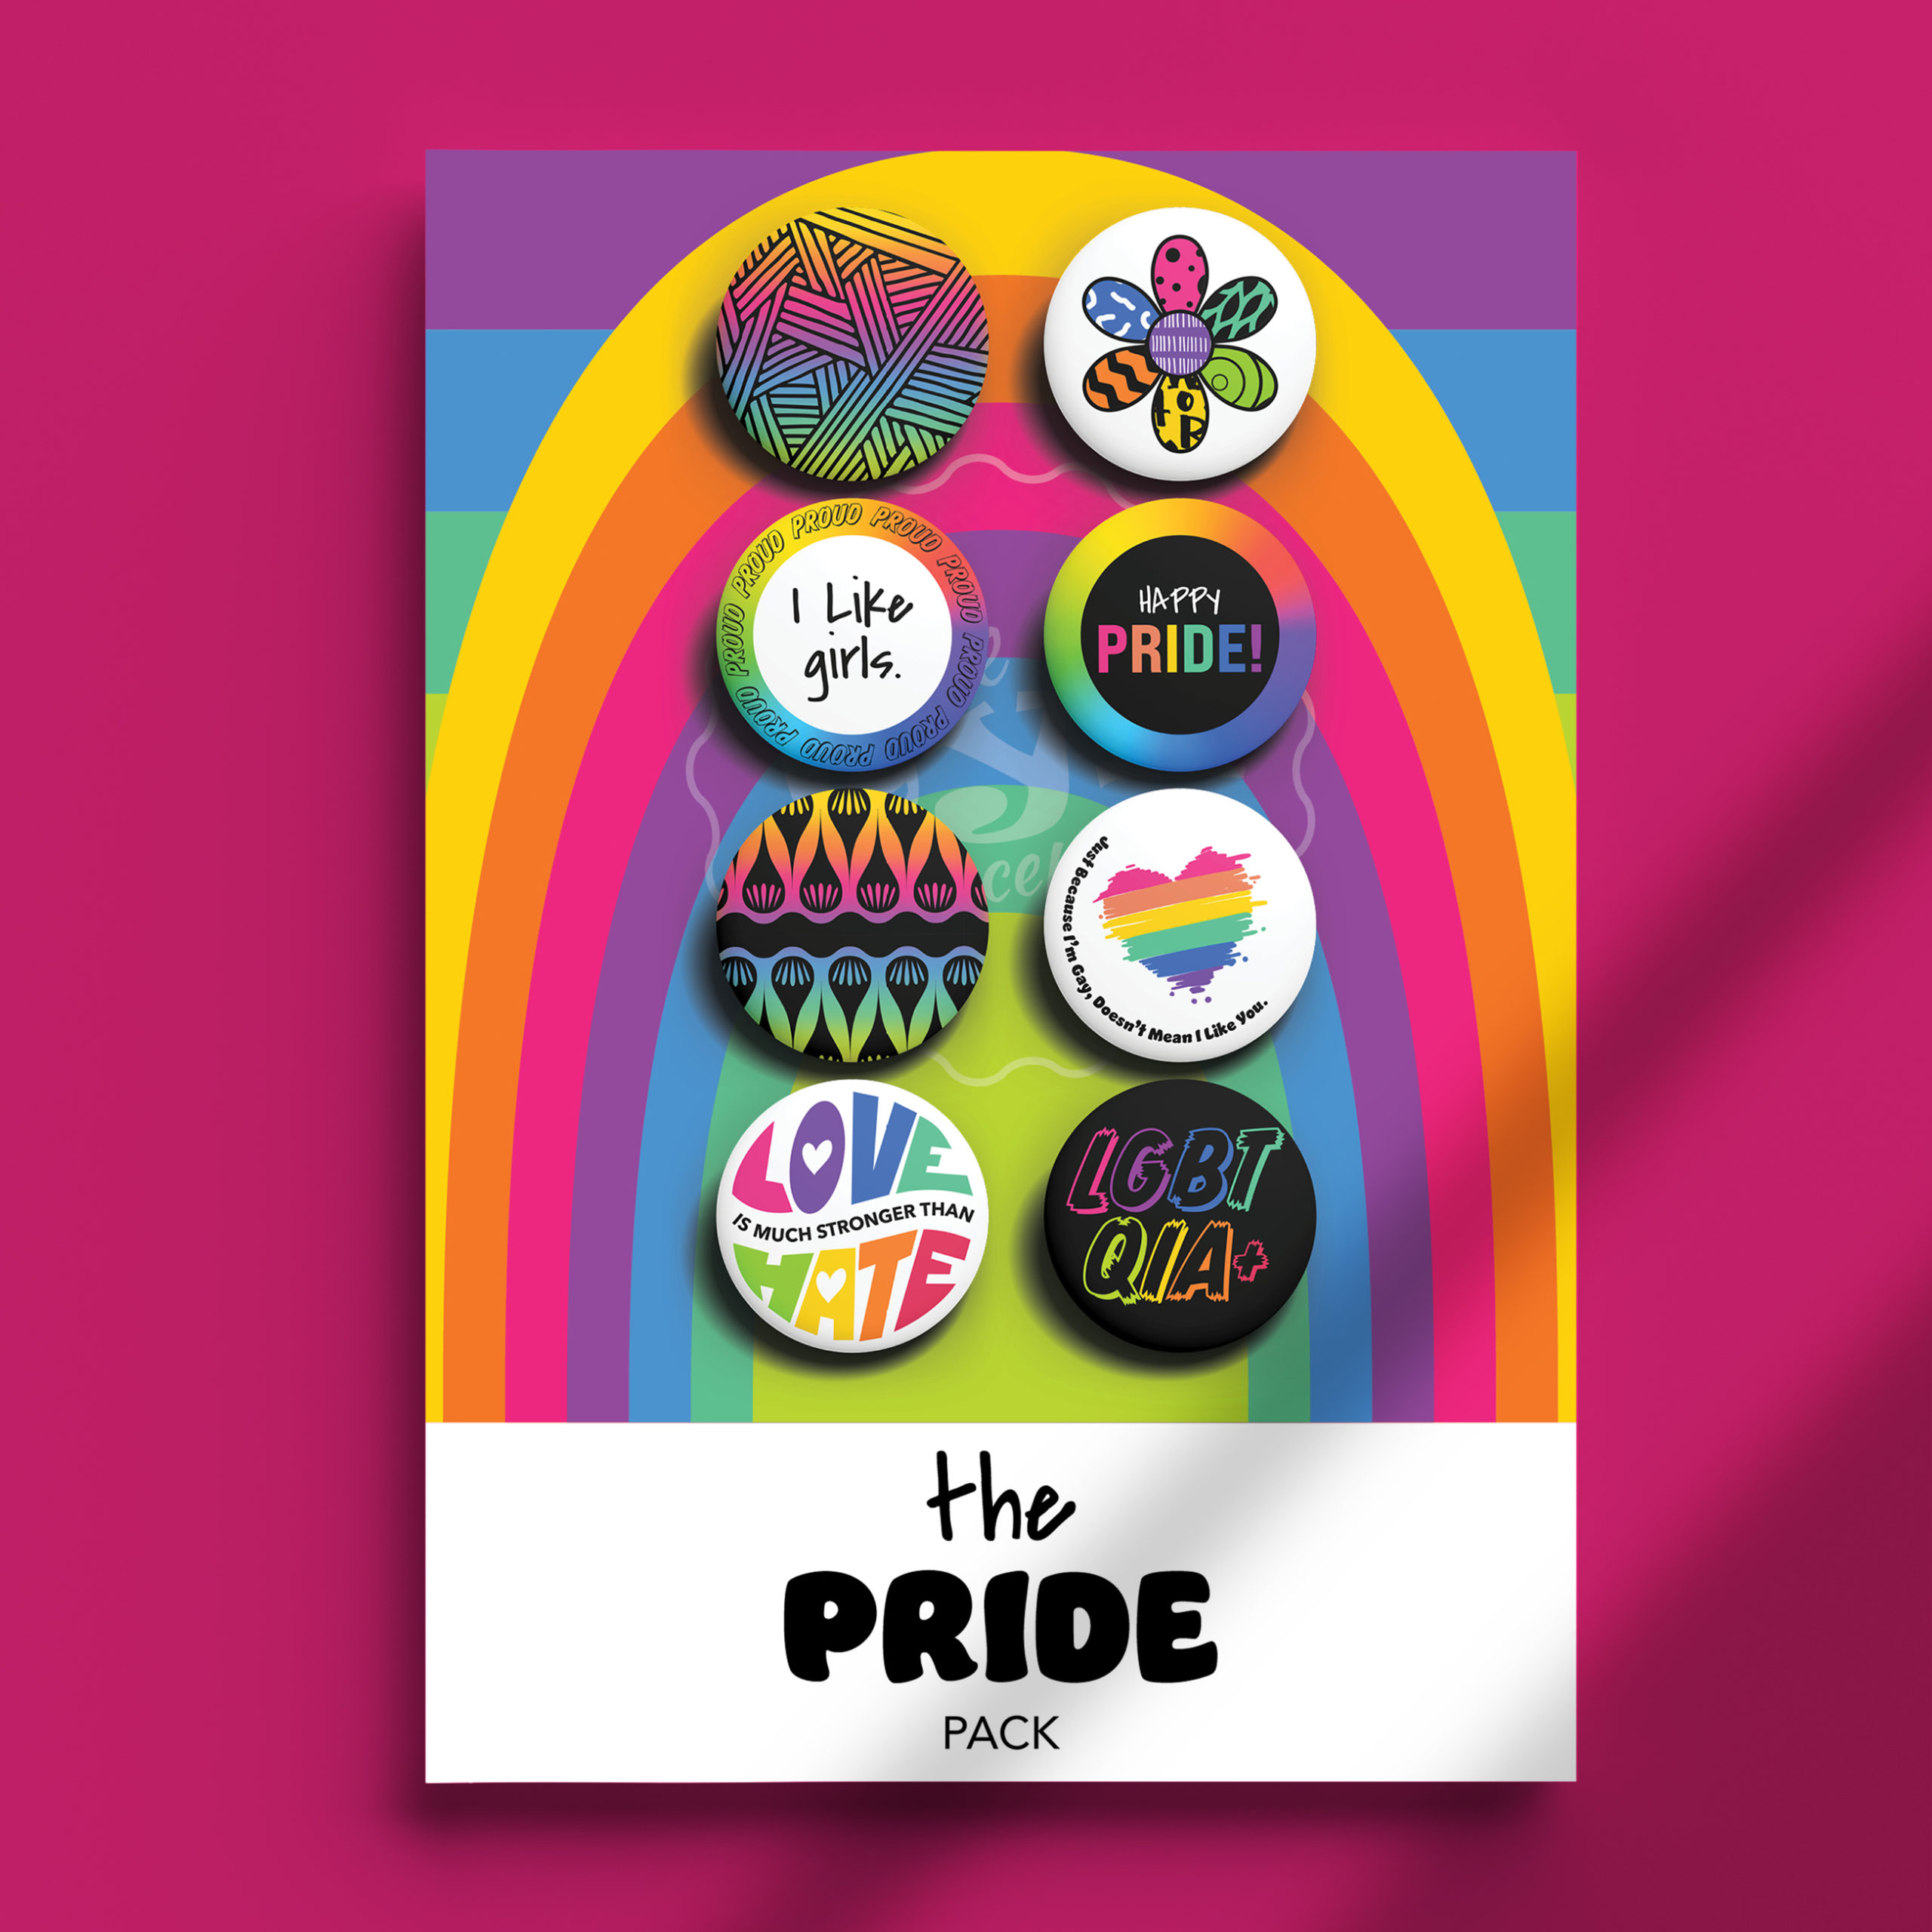 Image of The Pride I Like Girls Pack pins on package